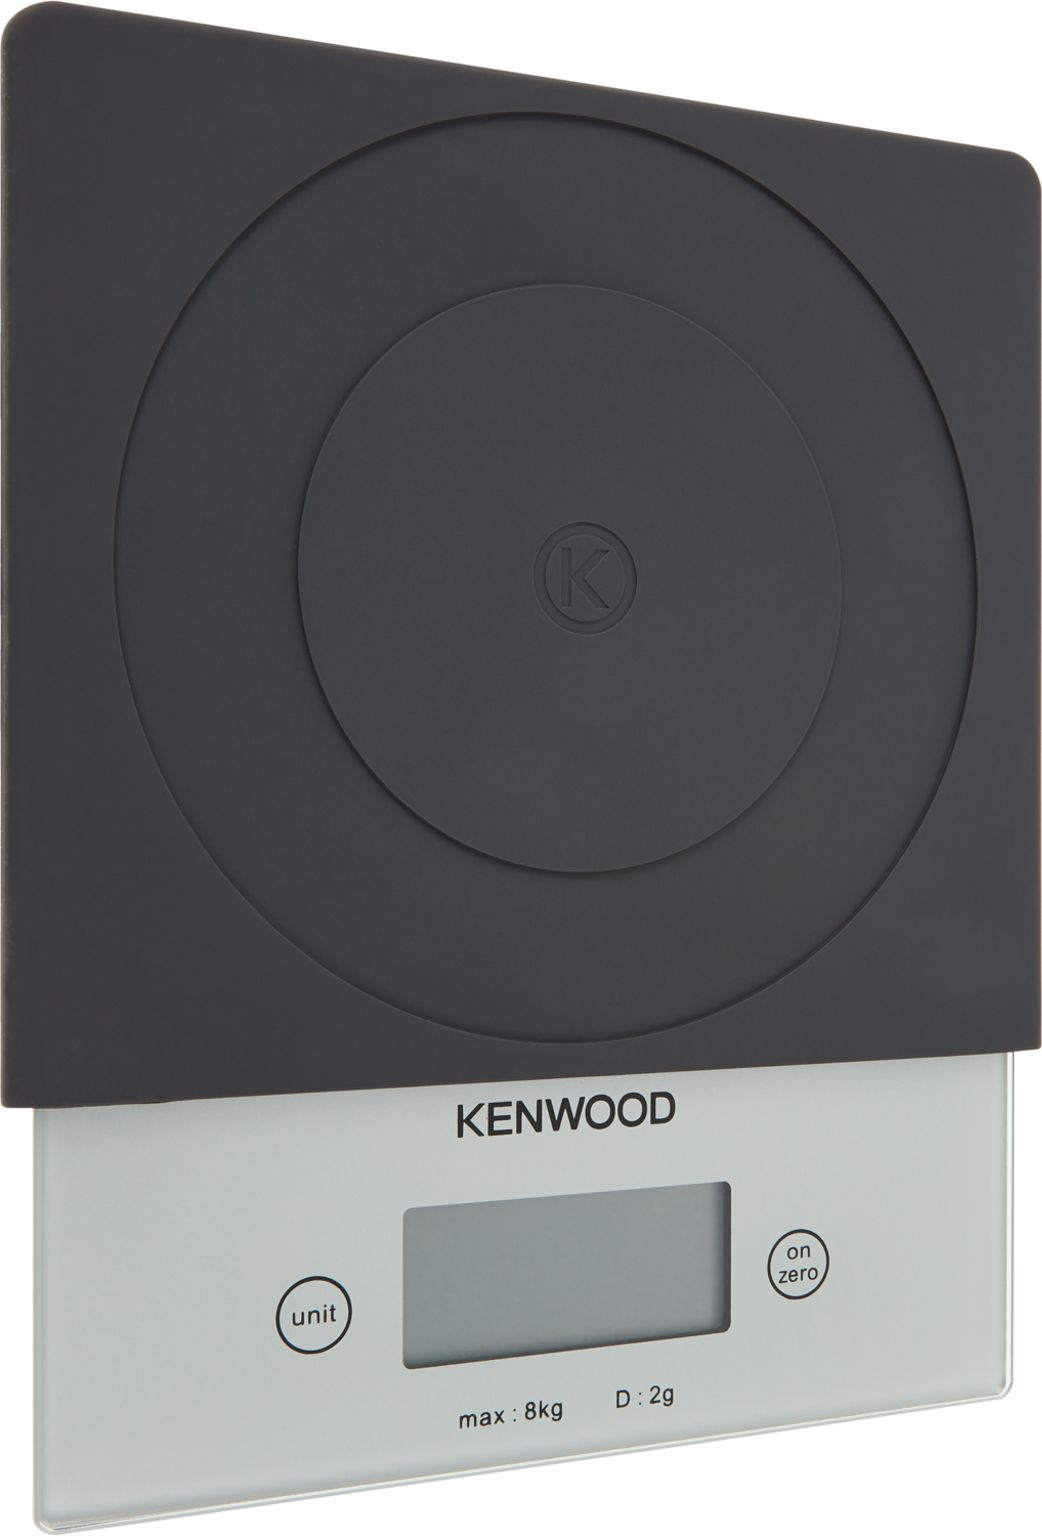 Kenwood Küchenwaage AT580B